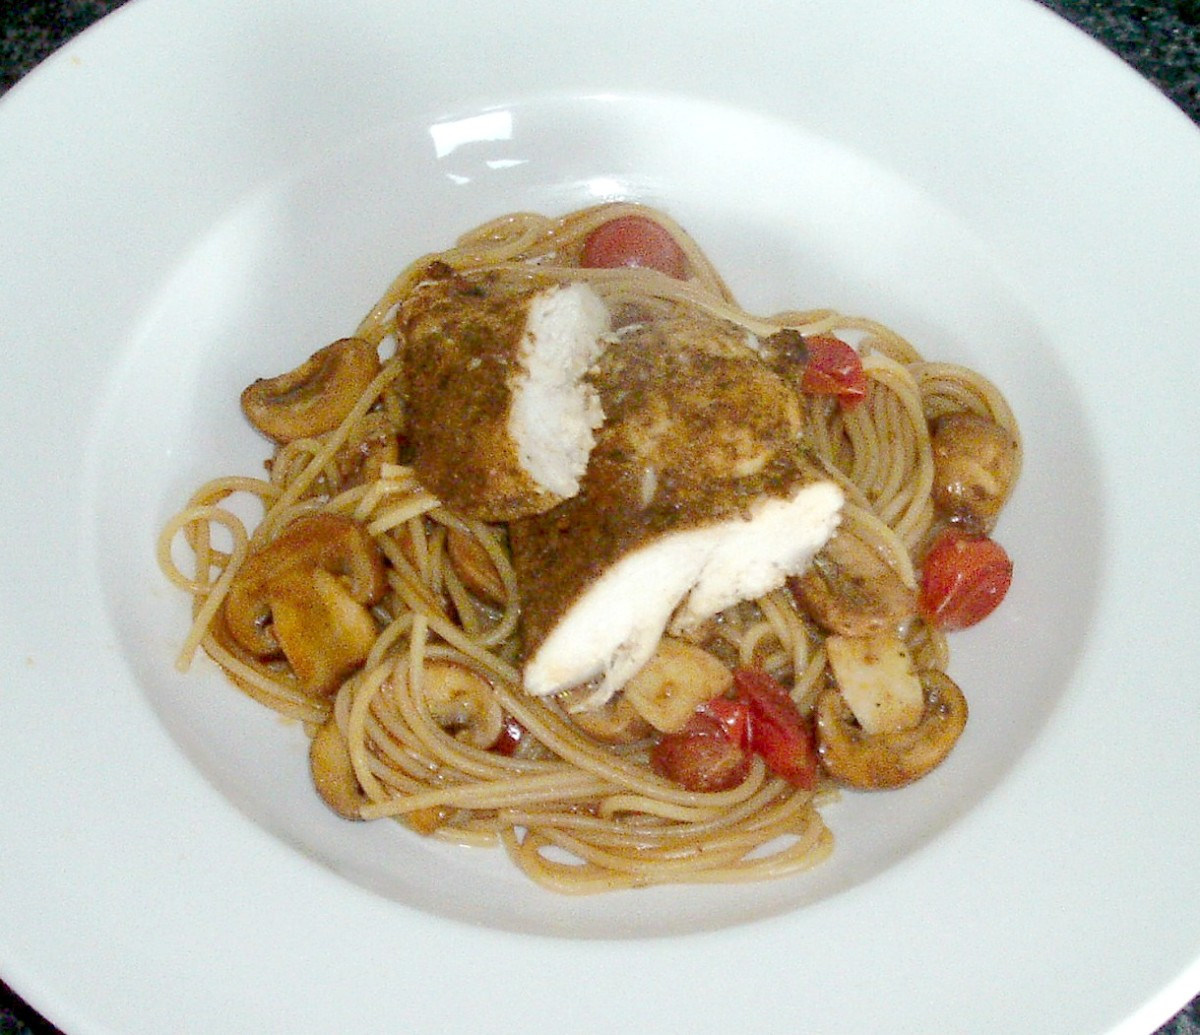 Bolognaise spiced baked chicken breast is served on a bed of spaghetti with tomatoes and mushrooms